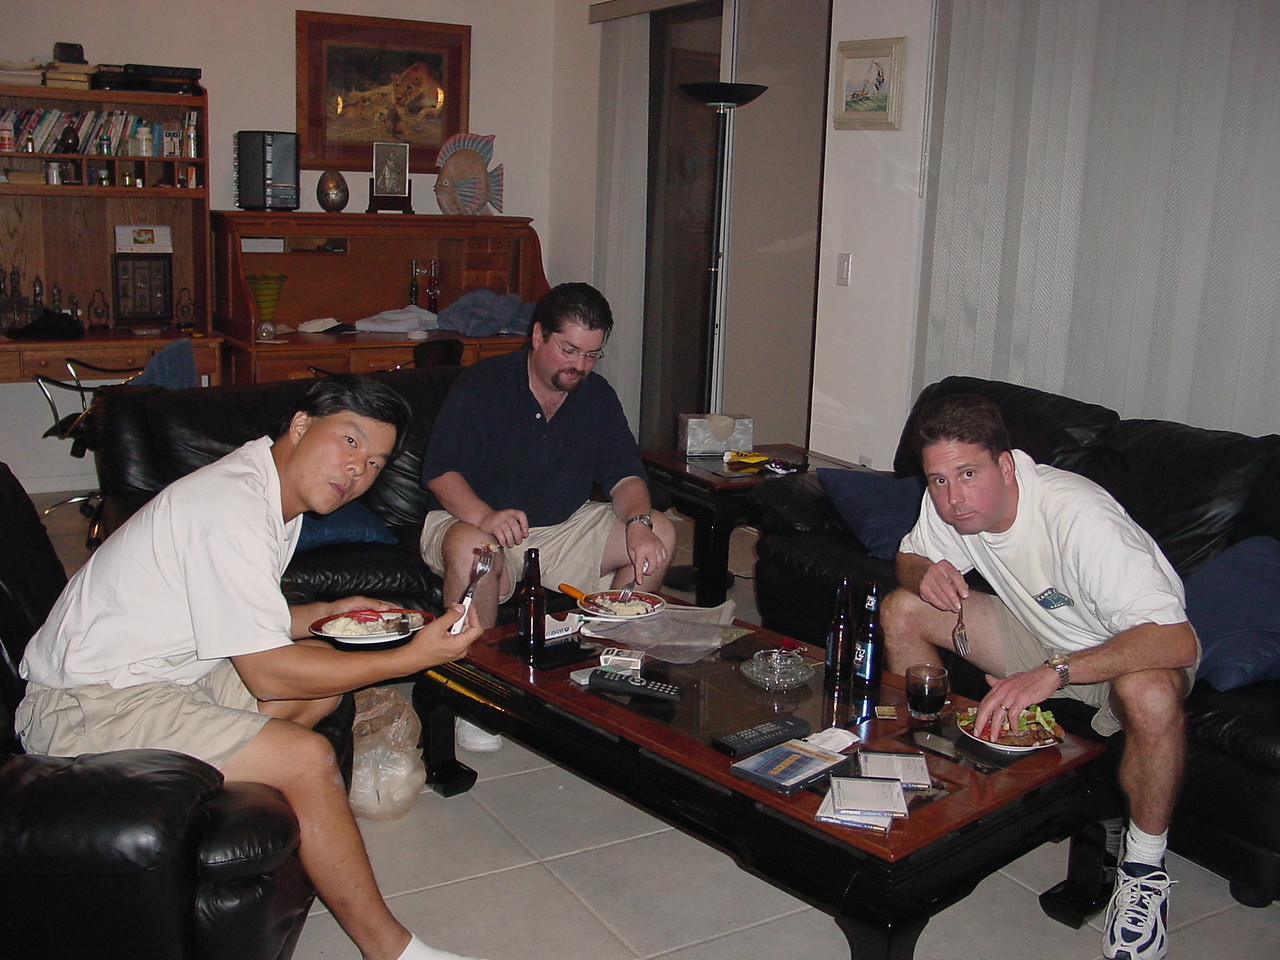 Man we got the munchies....just like old times huh, Joe?